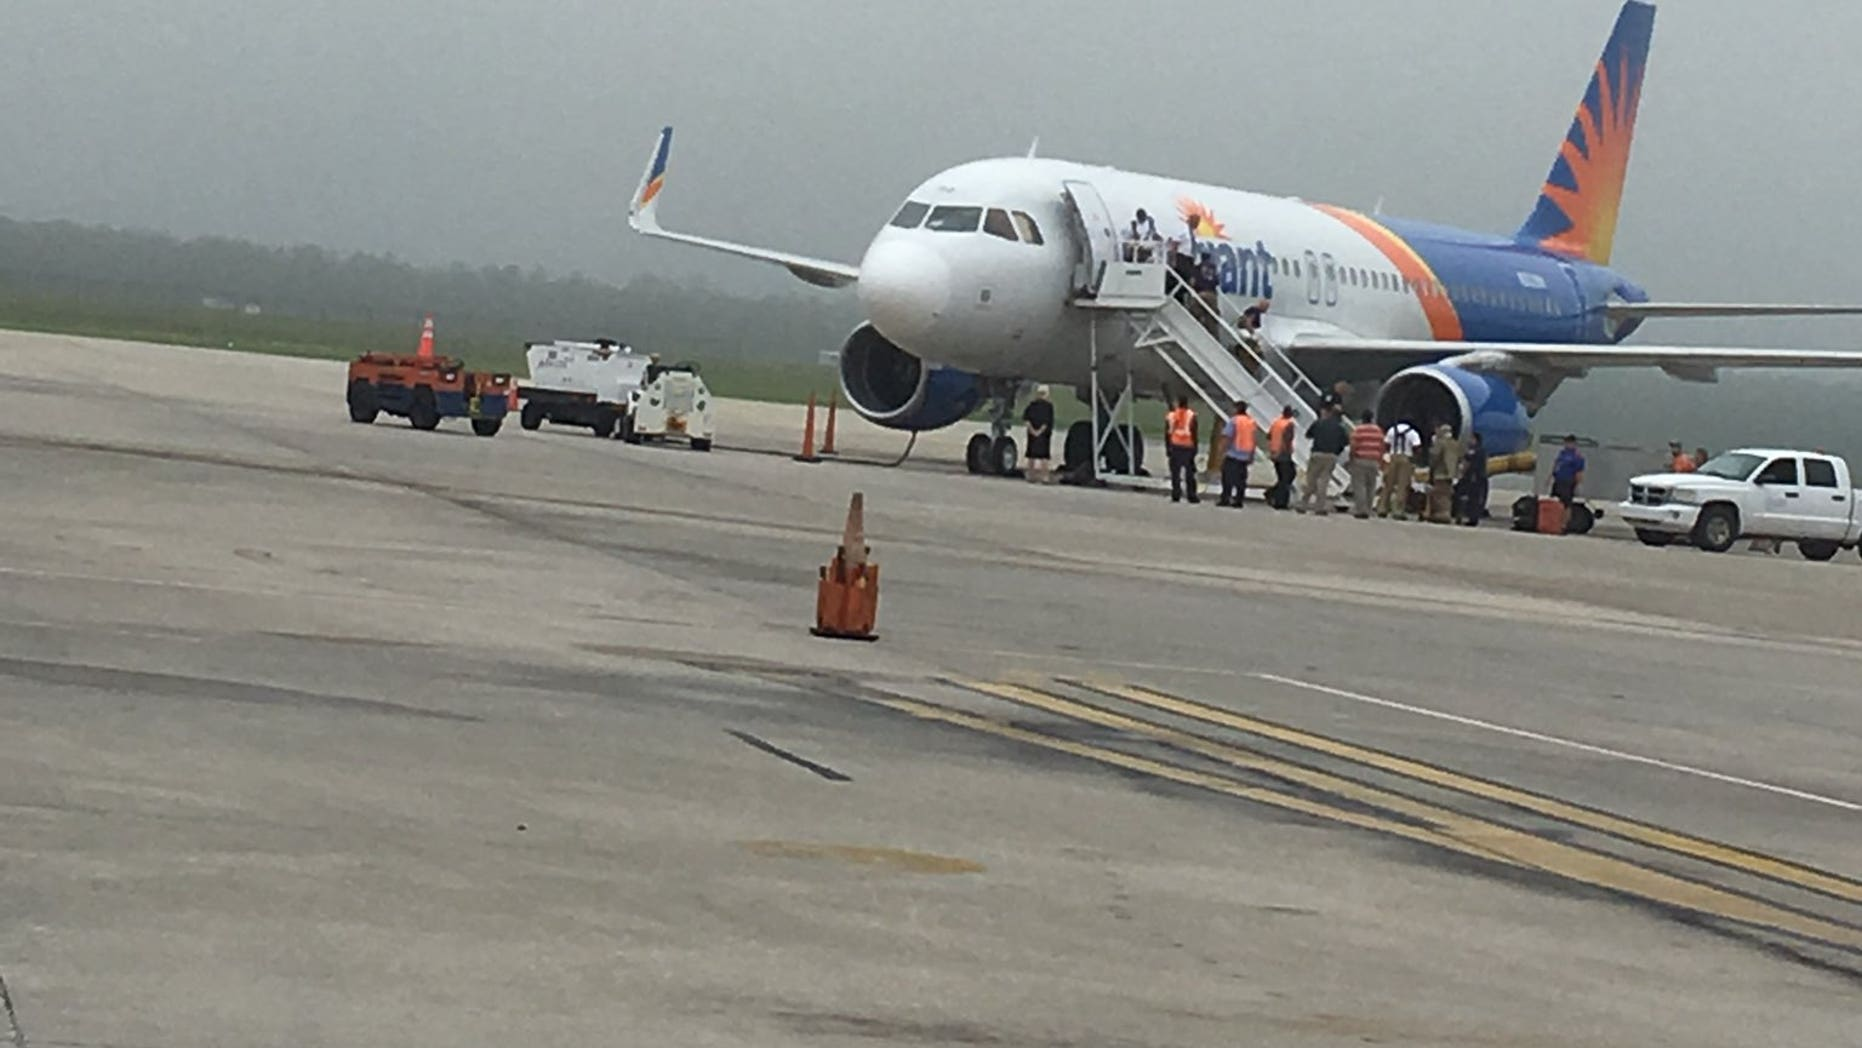 The Allegiant aircraft diverted to Gainesville, Fla., after the pilot reportedly suffered a seizure on the way to Punta Gorda.